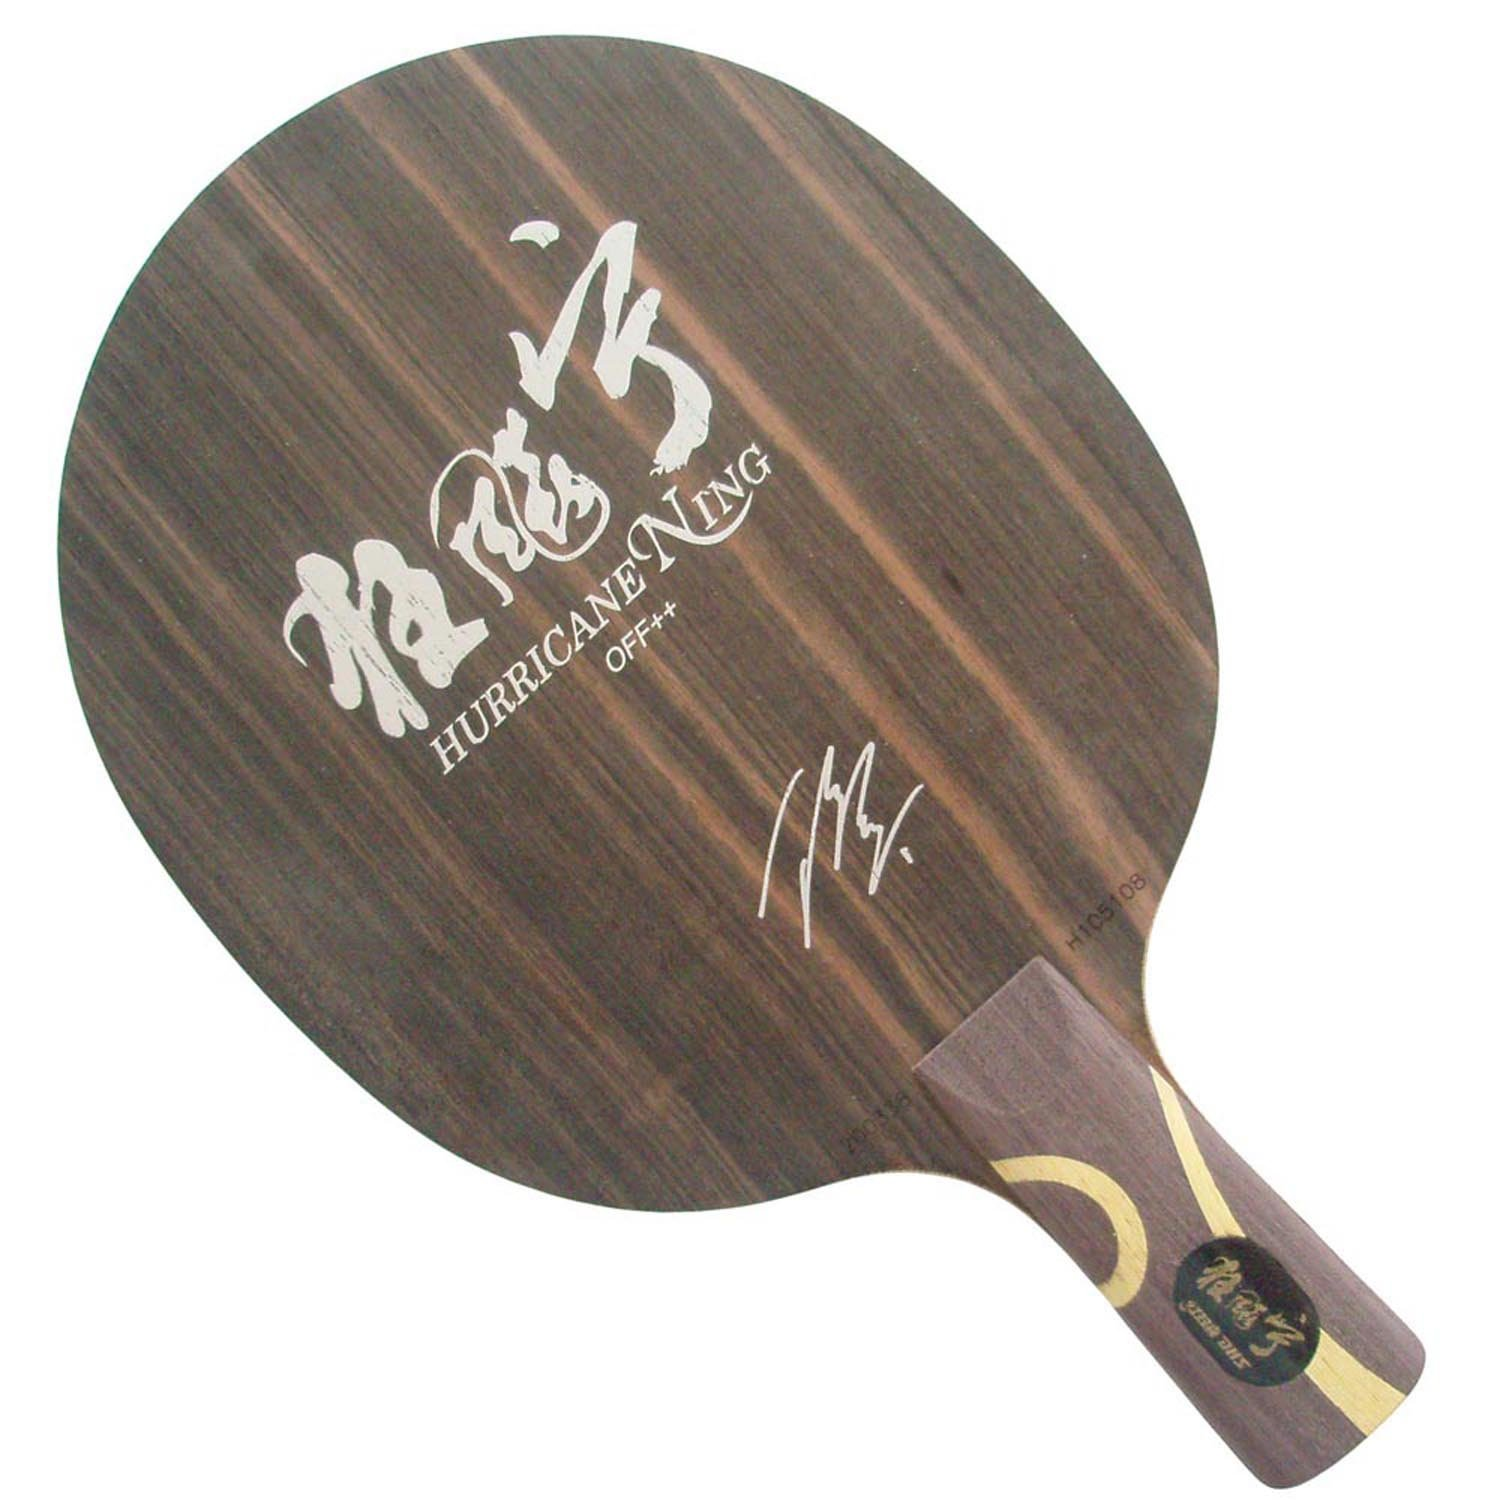 DHS Hurricane Ning 5-Ply OFF++ Table Tennis Blade for Ping Pong Racket, Penhold(Short Handle)-CS bering ceramic 11429 789